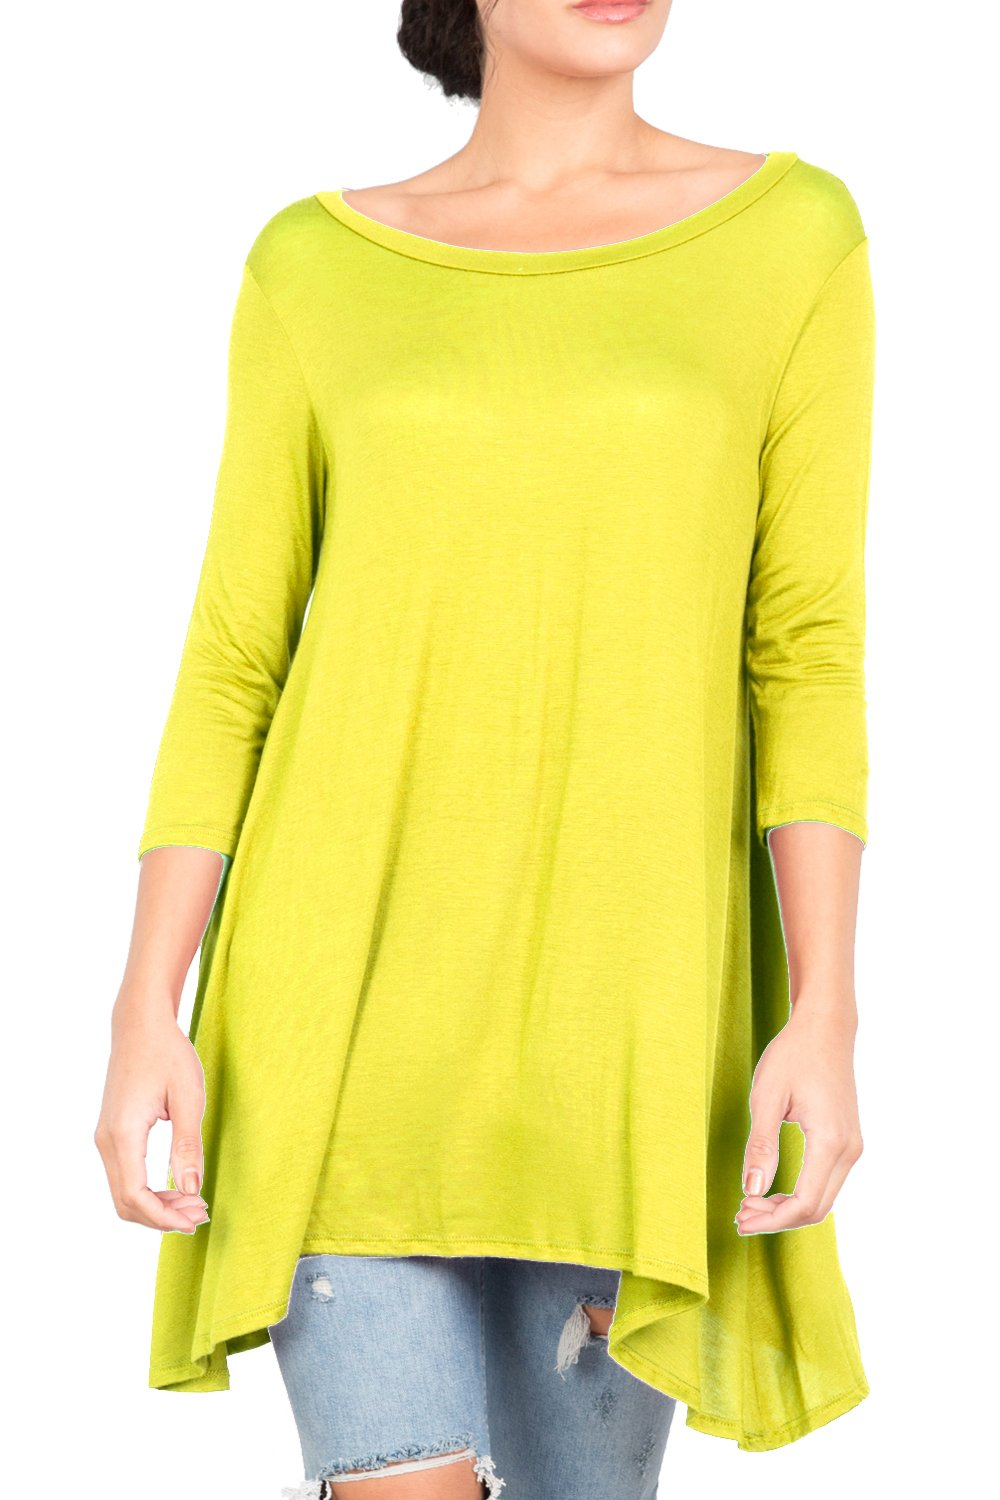 T2411PX 3/4 Sleeve Round Neck Relaxed A-Line Tunic T Shirt Top New Lime 2X